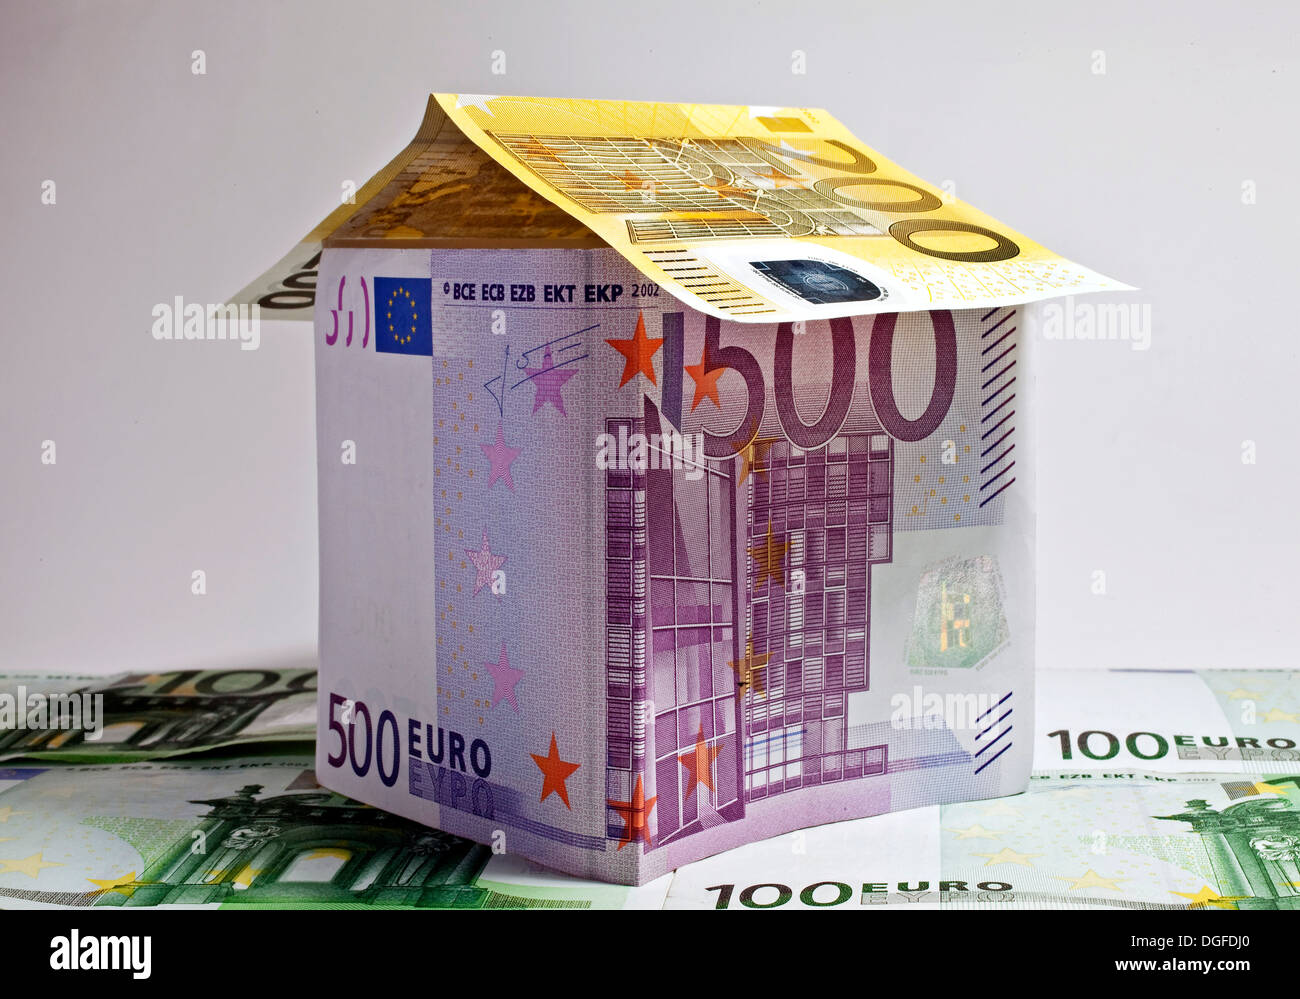 House made of euro banknotes, symbolic image for construction financing, Germany Stock Photo